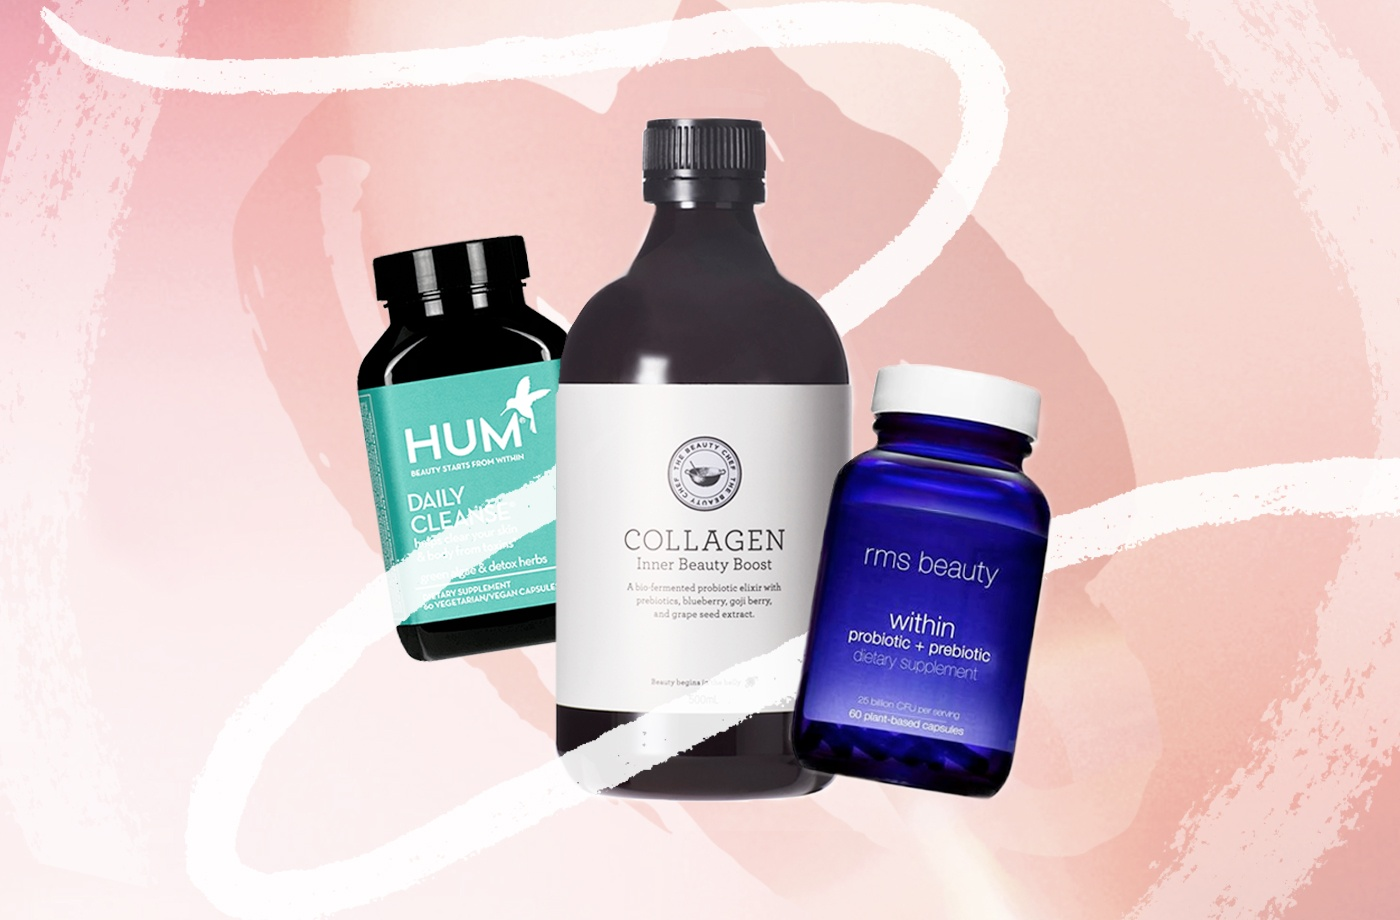 Thumbnail for Bluemercury is becoming a one-stop shop for wellness with its new supplement program